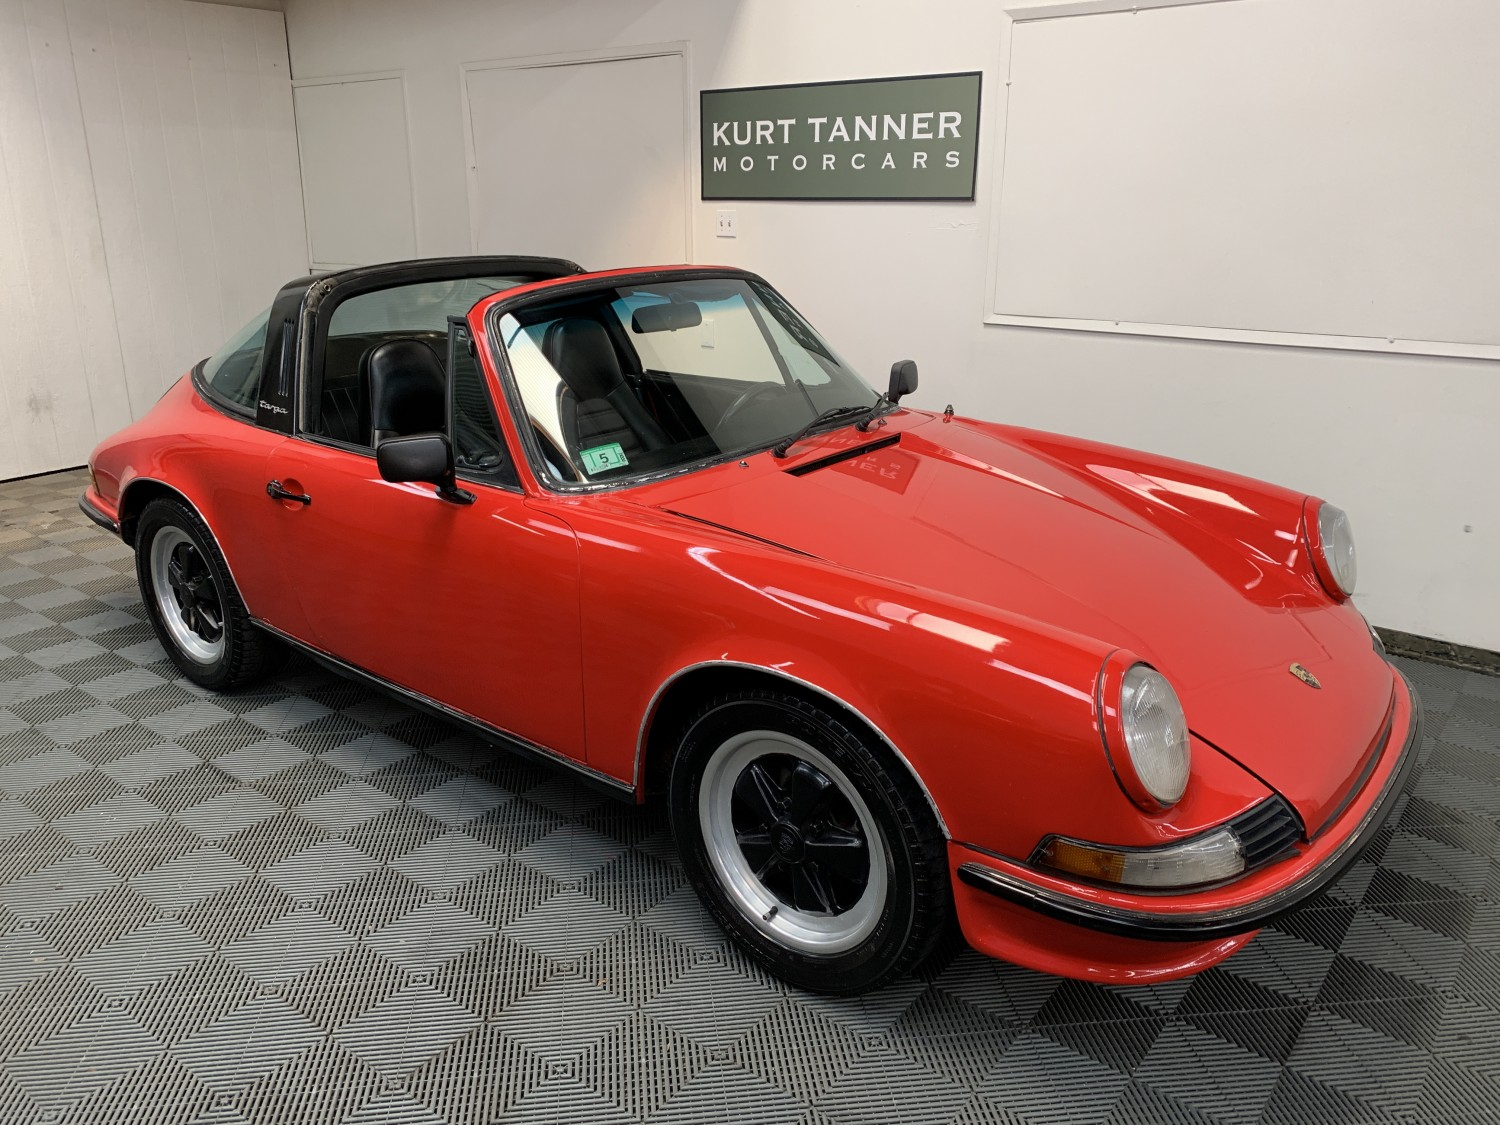 1971 PORSCHE 911 T TARGA. GUARDS RED WITH BLACK TRIM. 5-SPEED. CORRECT ENGINE. NICE, SOLID, RUNNING AND DRIVING CAR FOR EASY IMPROVEMENT. ORIGINAL COLOR CODE 2310-G TANGERINE. CHASSIS NUMBER 9111111933, ENGINE NUMBER 6116657. SHOWS 74,687 MILES.